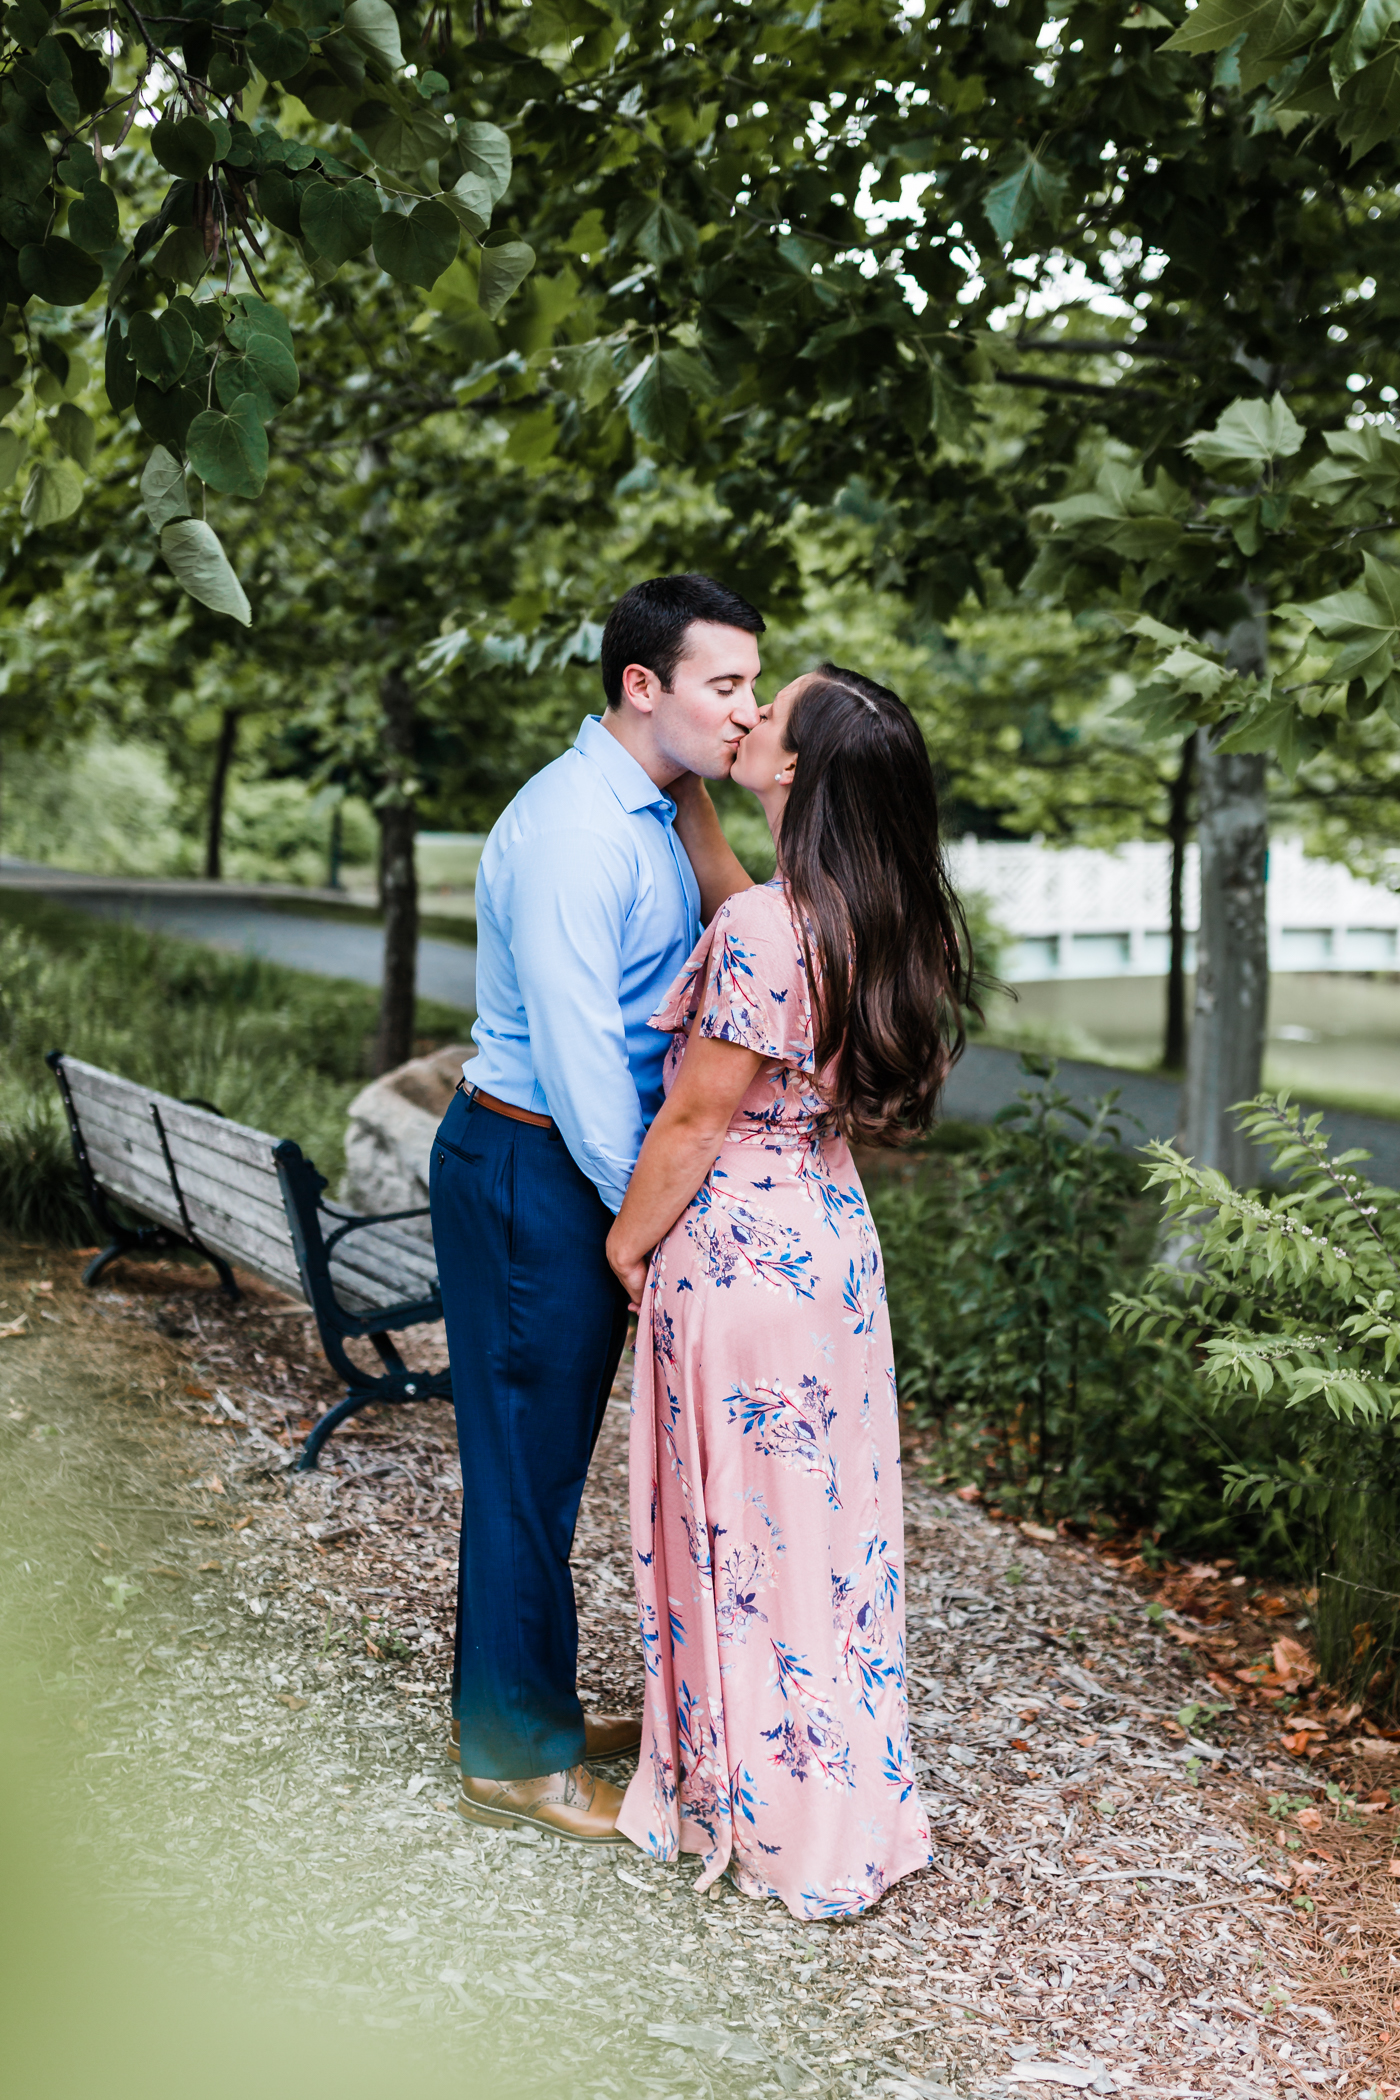 couple kisses at Quiet Waters Park - best photography locations in Maryland for engagement photos